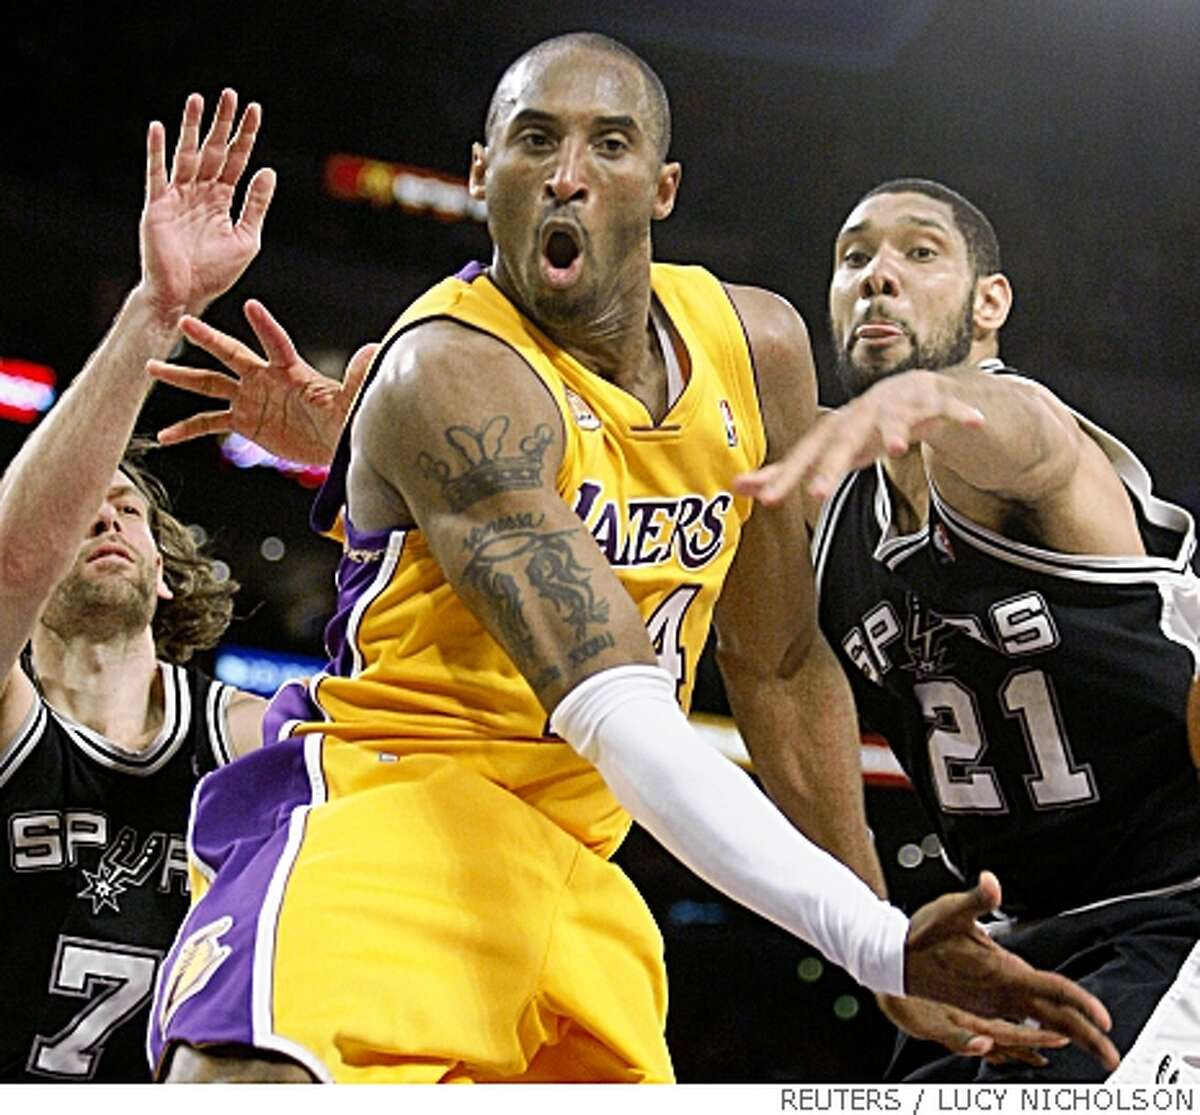 Los Angeles Lakers' Kobe Bryant passes off after driving between San Antonio Spurs' Tim Duncan (R) and Fabricio Oberto (L) during Game 2 of their NBA Western Conference final basketball playoff series in Los Angeles, May 23, 2008. REUTERS/Lucy Nicholson (UNITED STATES)